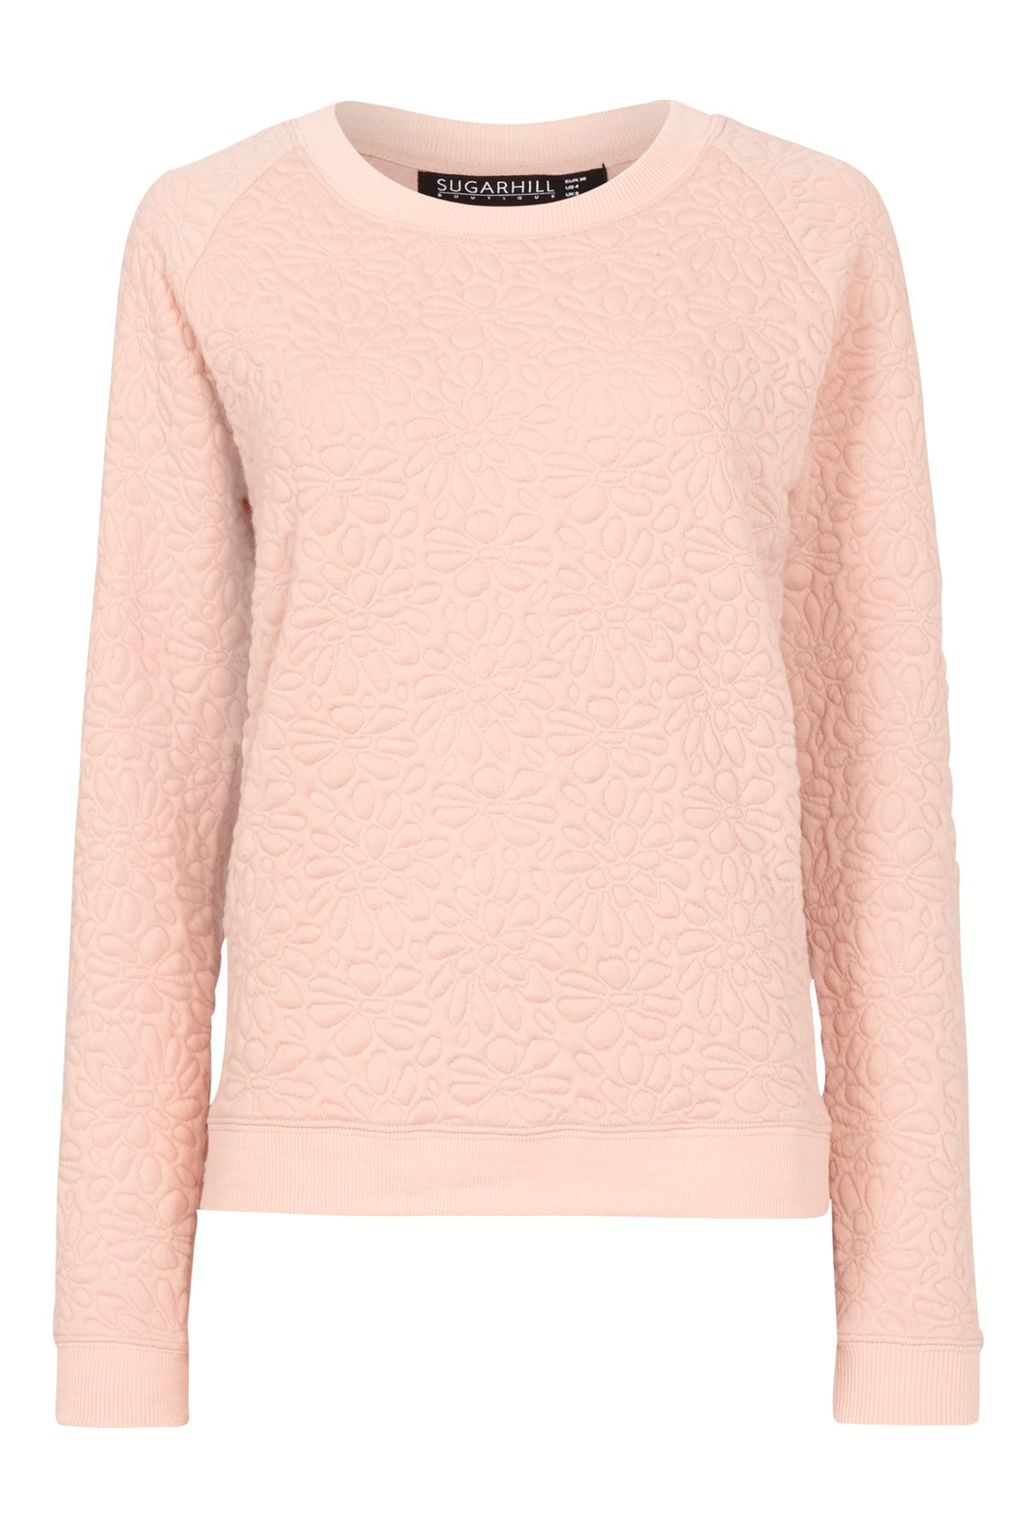 Betty Floral Embossed Sweater, Peach - pattern: plain; style: standard; predominant colour: blush; occasions: casual; length: standard; fibres: cotton - mix; fit: slim fit; neckline: crew; sleeve length: long sleeve; sleeve style: standard; pattern type: fabric; texture group: other - light to midweight; season: s/s 2016; wardrobe: highlight